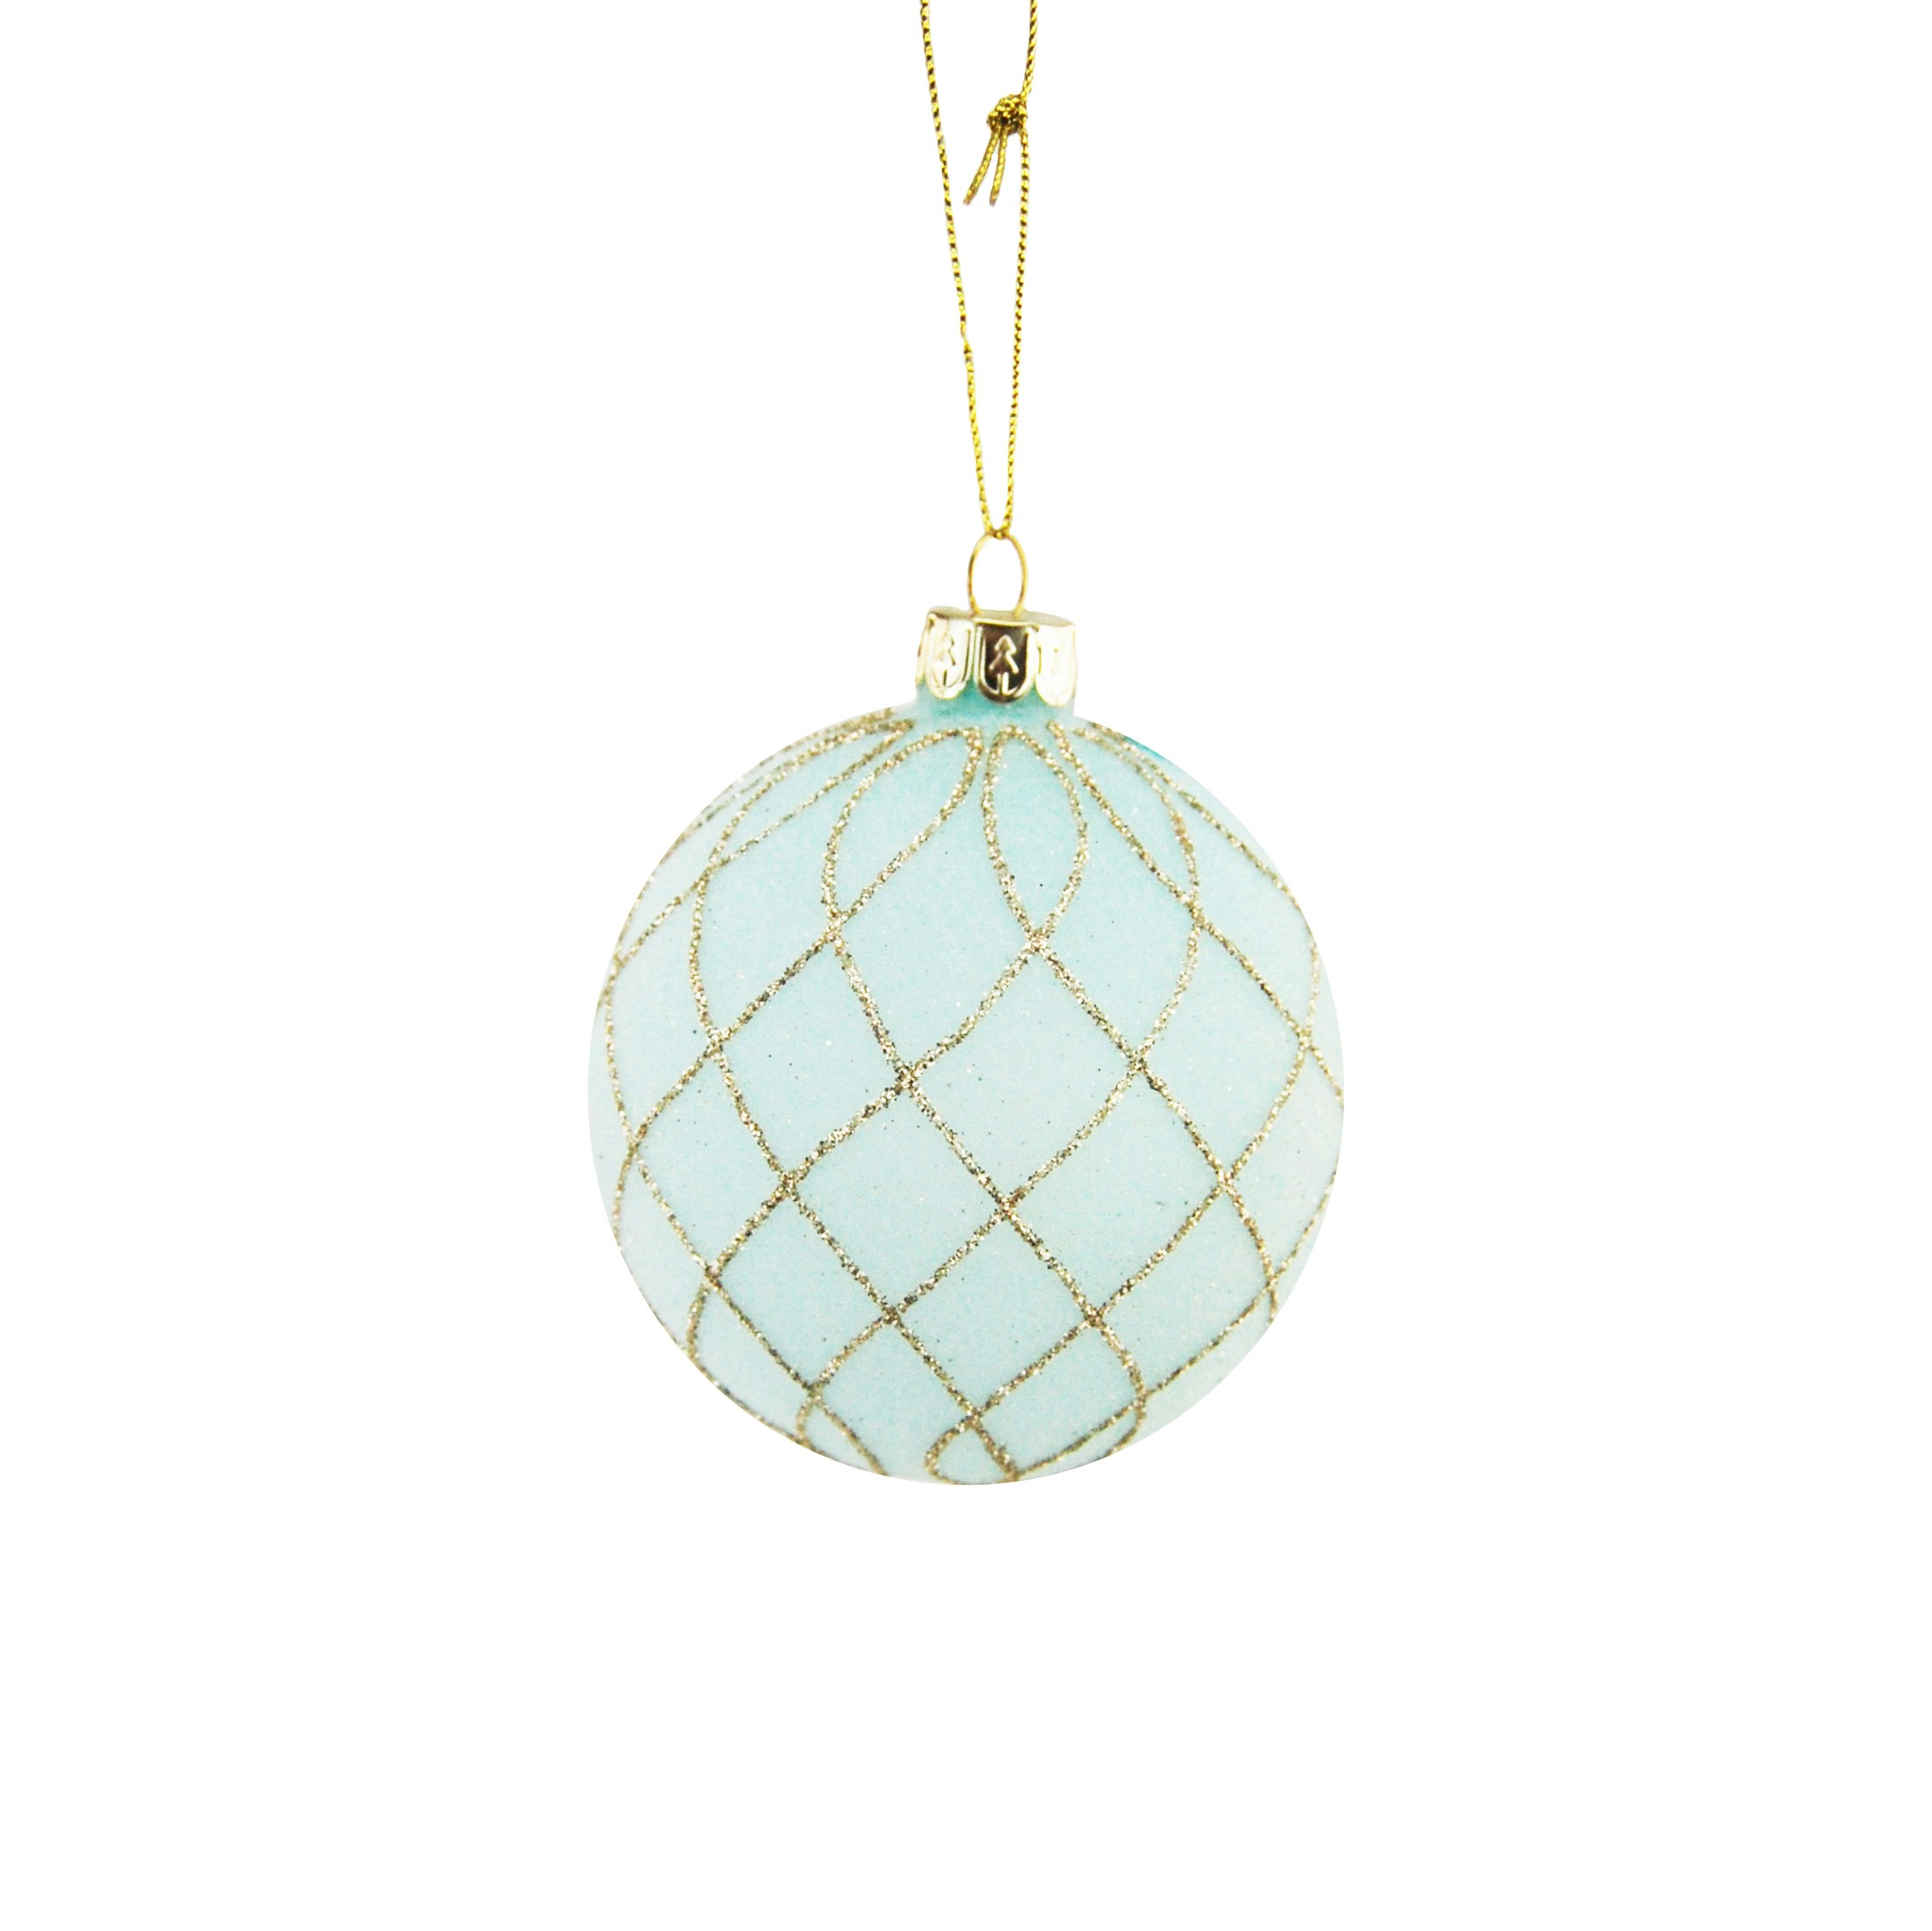 HANG. TEAL/GOLD GLITTER BAUBLE 8cm